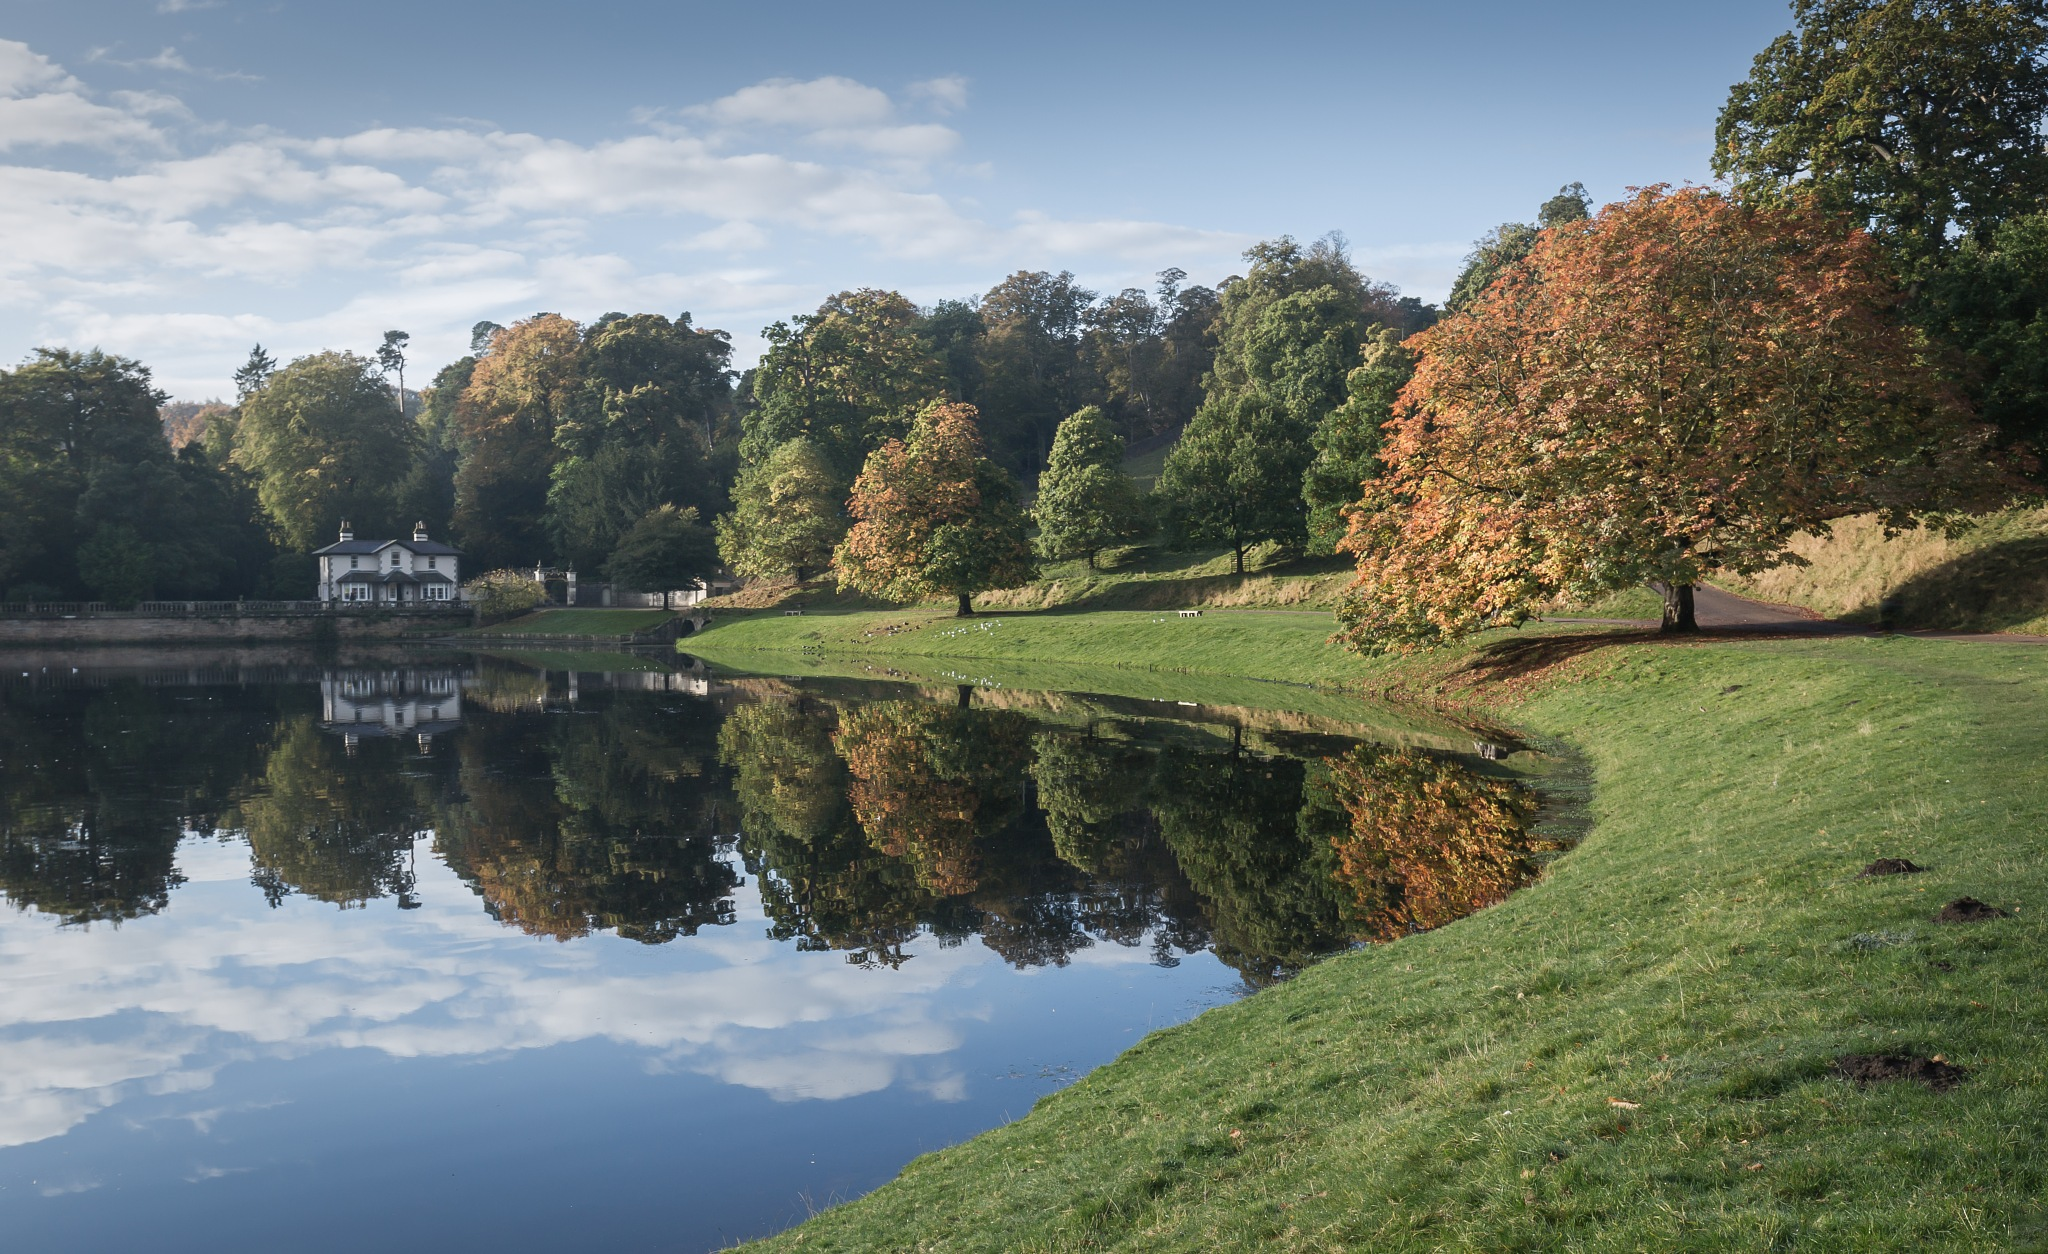 Studley Royal  by davidautumns